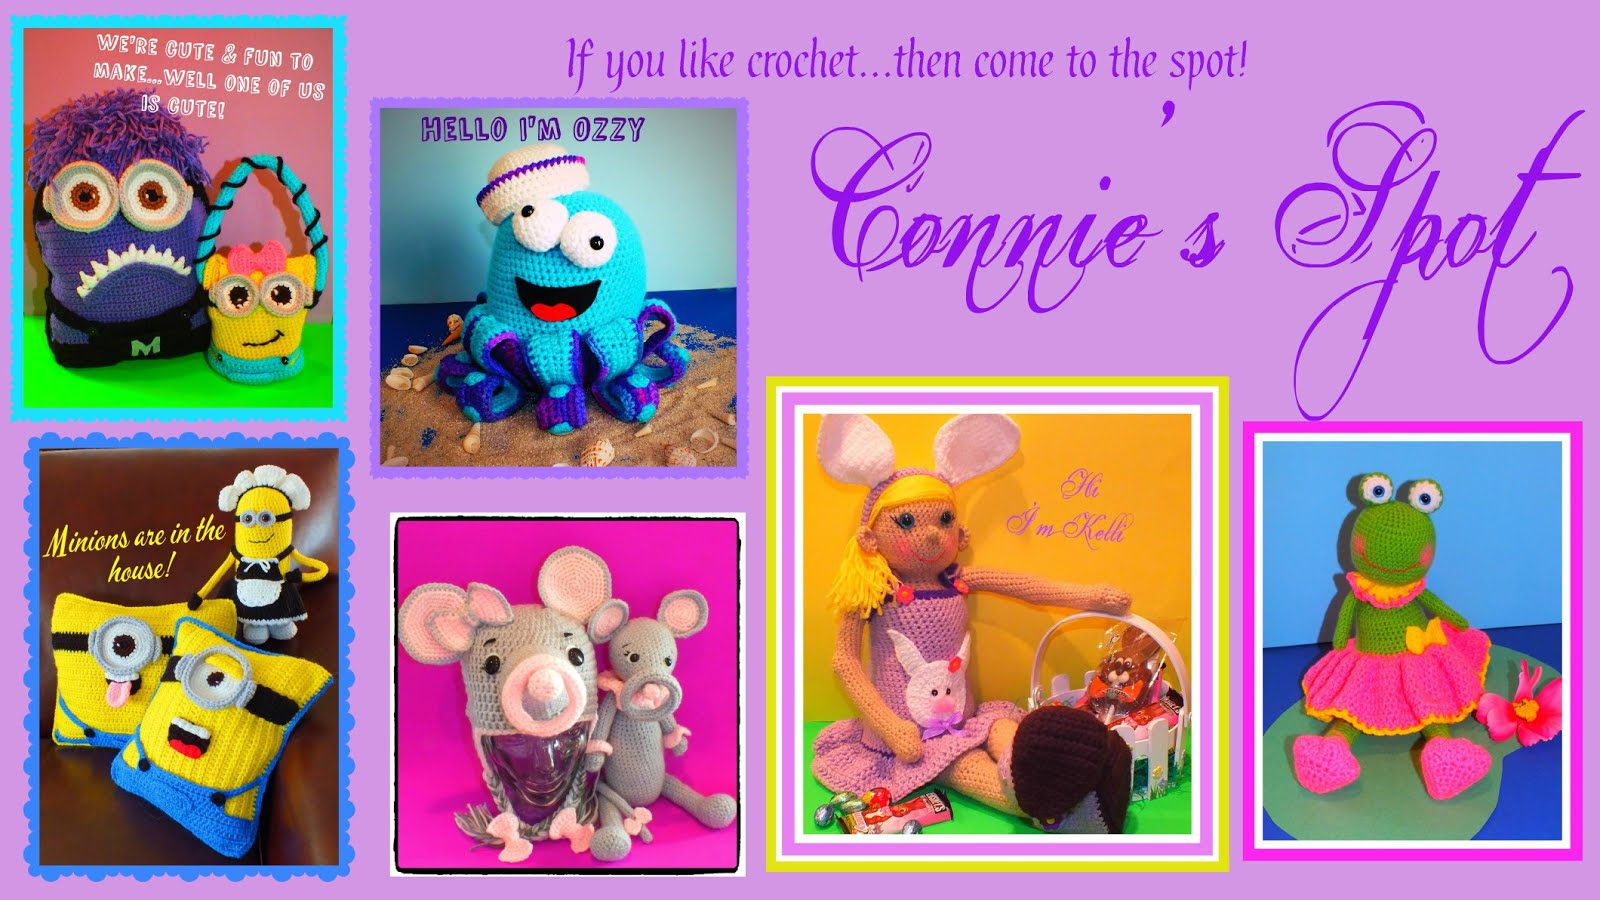 Connie's Spot© Twitter Followers, Welcome!!